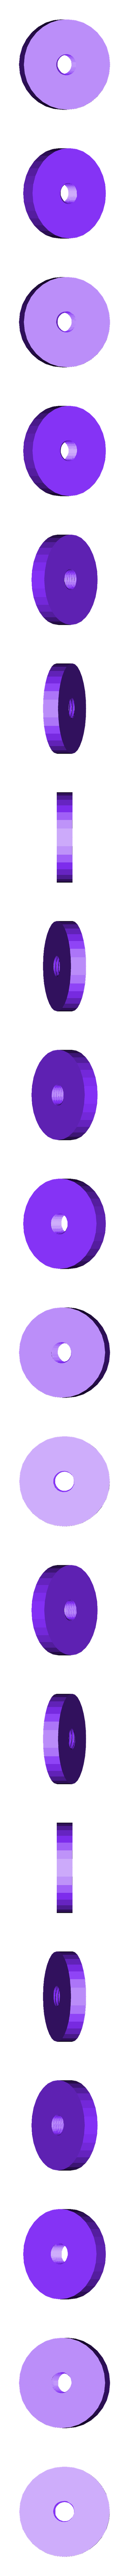 Circle.stl Download free STL file Toy with screws and nuts forms V2 • 3D printing design, madsoul666